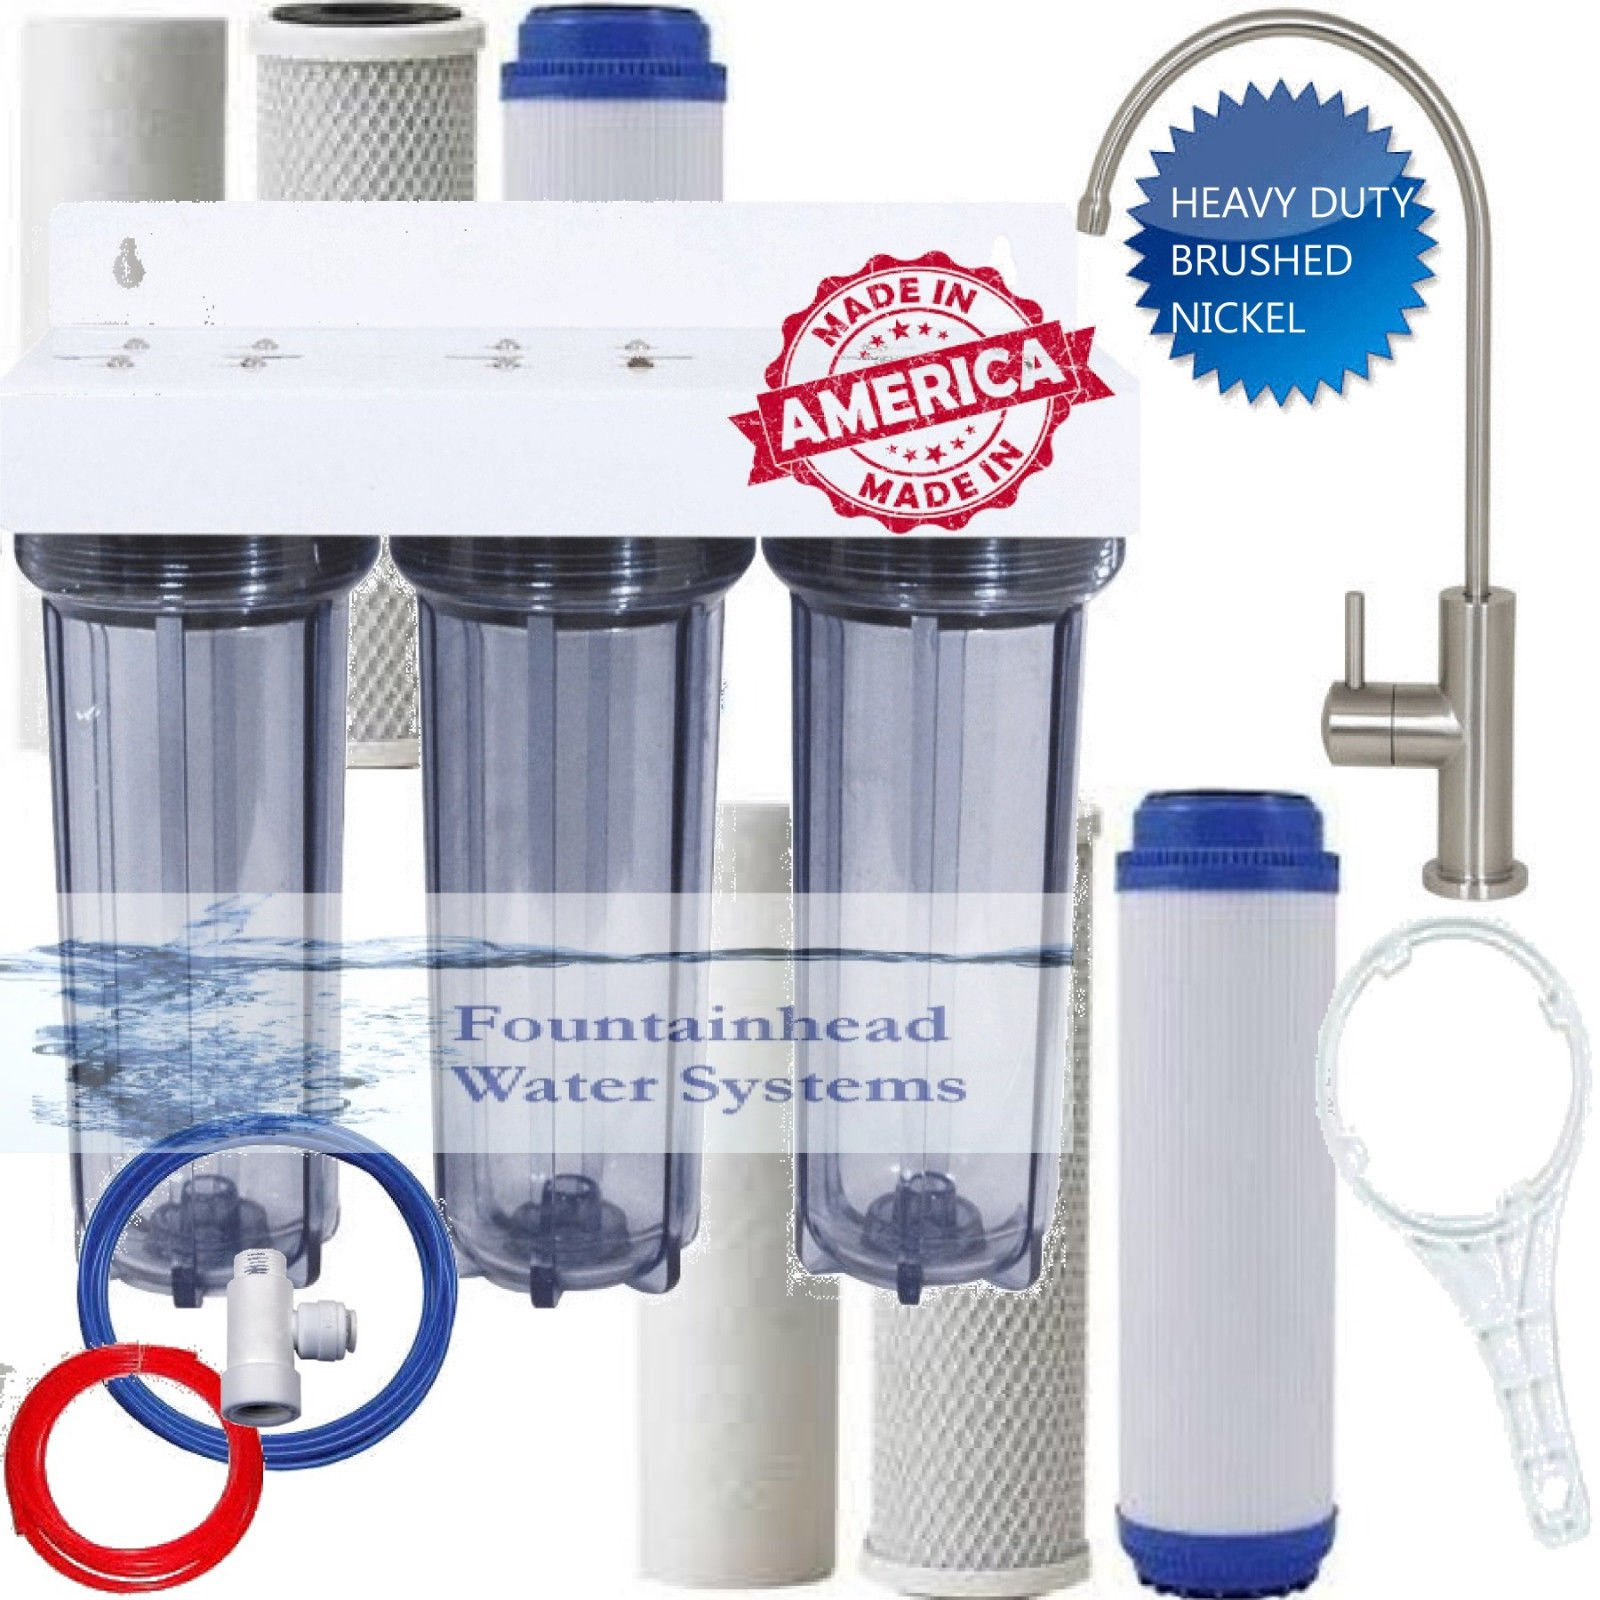 Clear 3 Stage Under Sink Water Filter Extra Filters Luxury Brushed Nickel Faucet by Fountainhead Water System